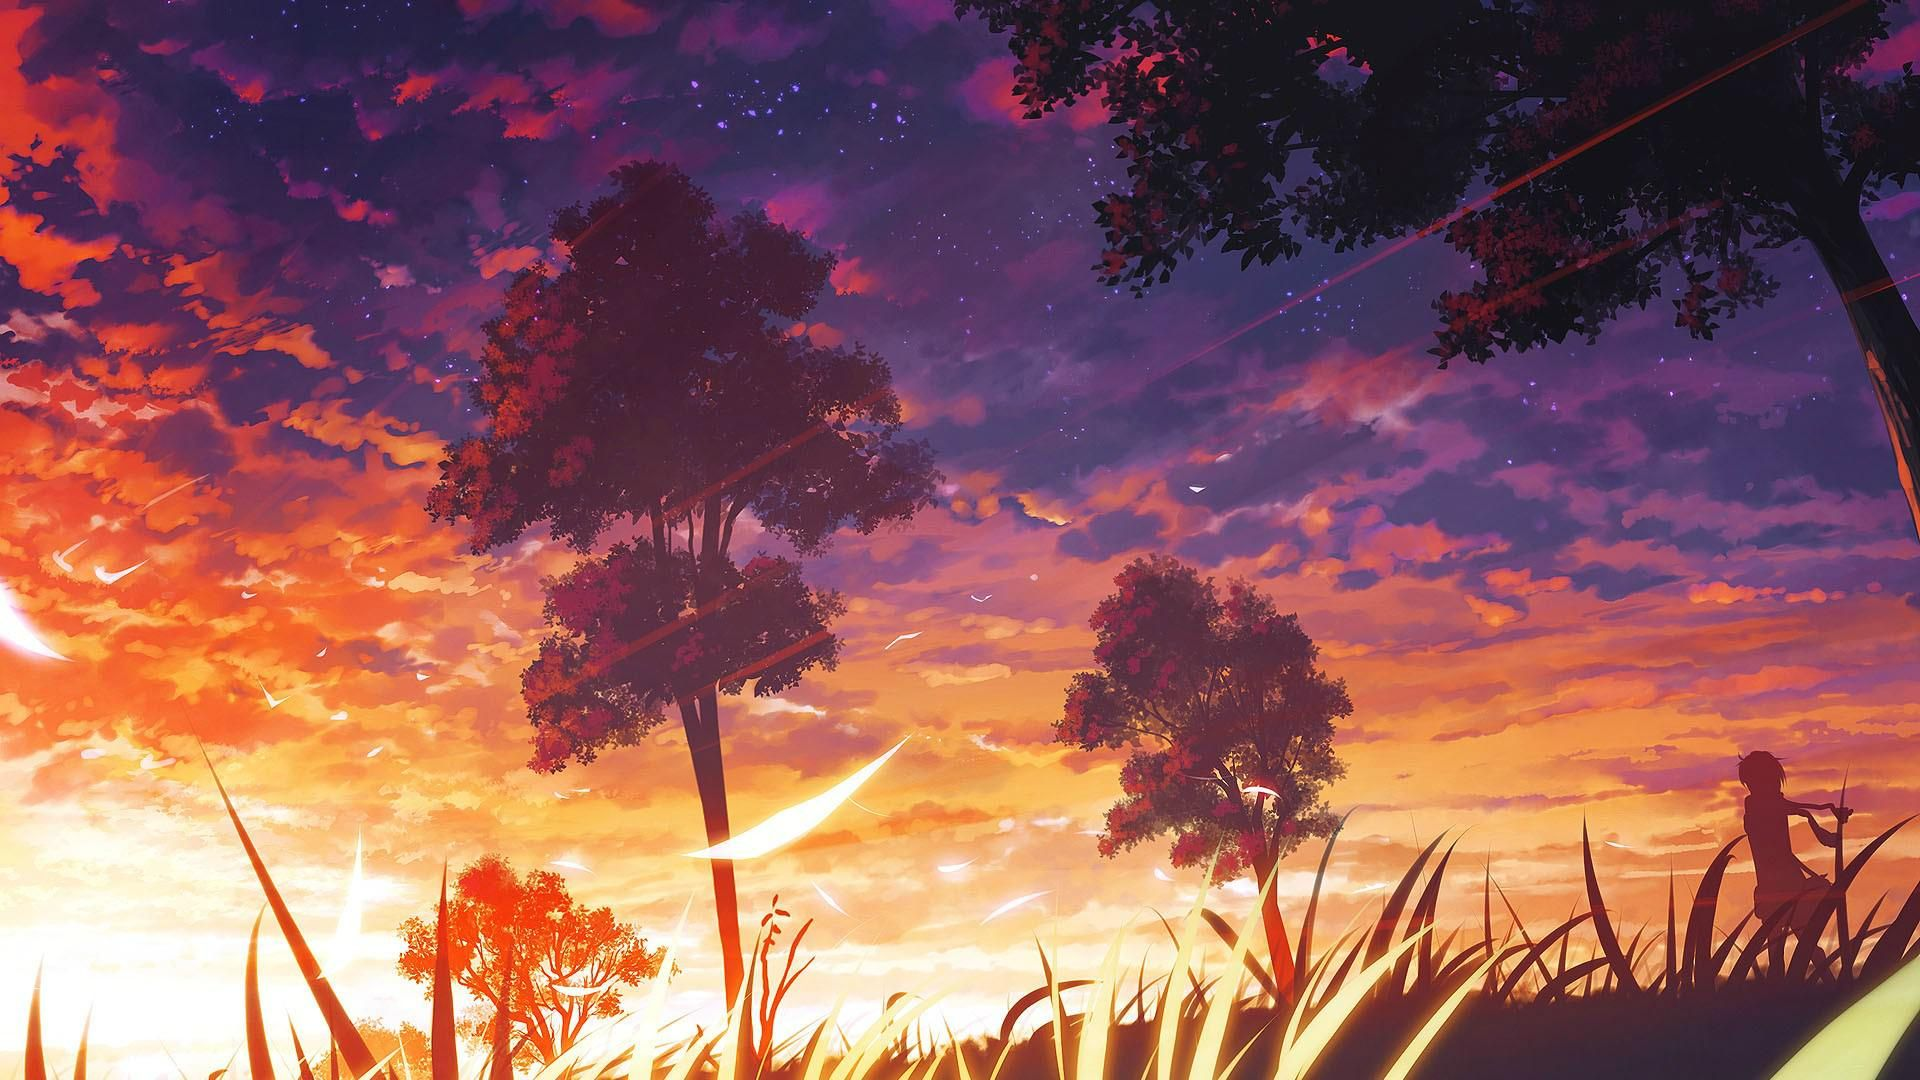 Sunset Anime Landscape 1920x1080 Scenery Wallpaper Anime